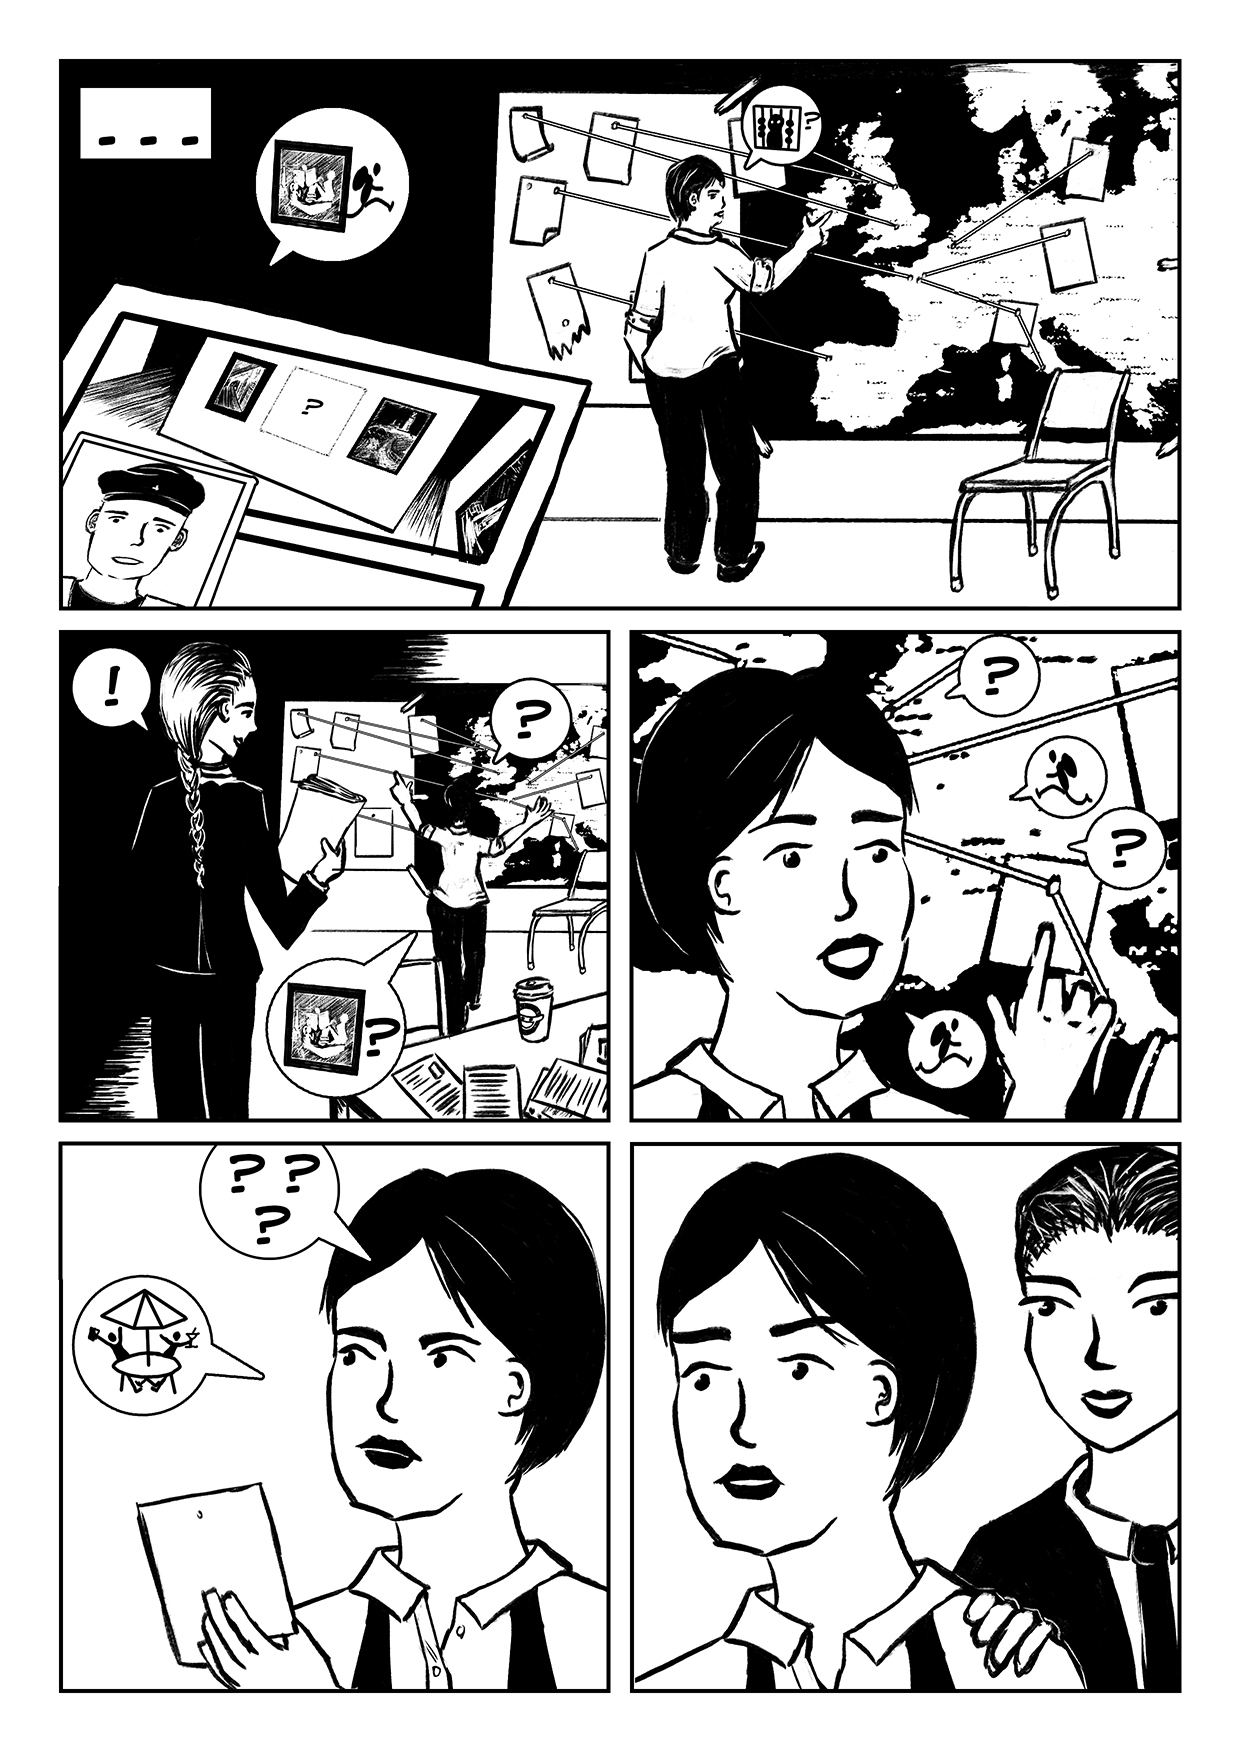 Holiday Heist Comic page 2, a comic about two detectives tracking down an art thief.